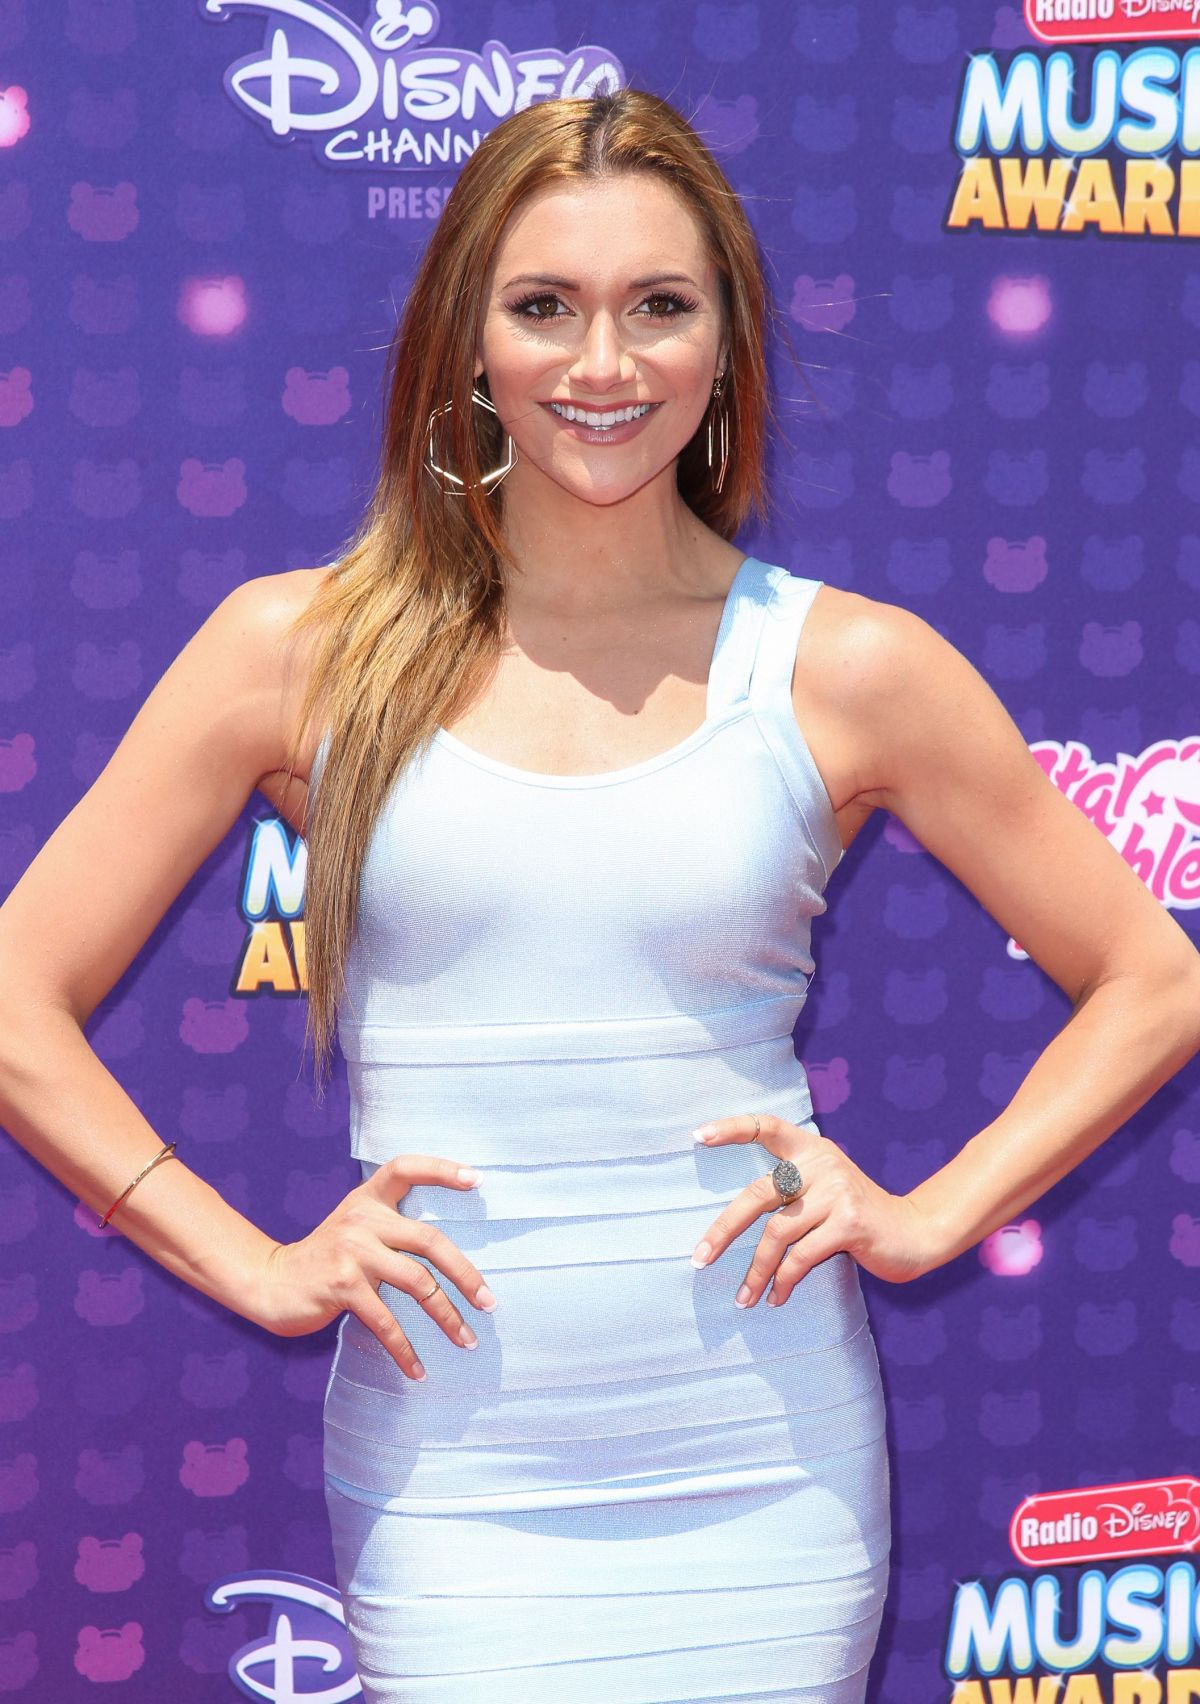 ALYSON STONER at 2016 Radio Disney Music Awards in Los Angeles 04/30/2016